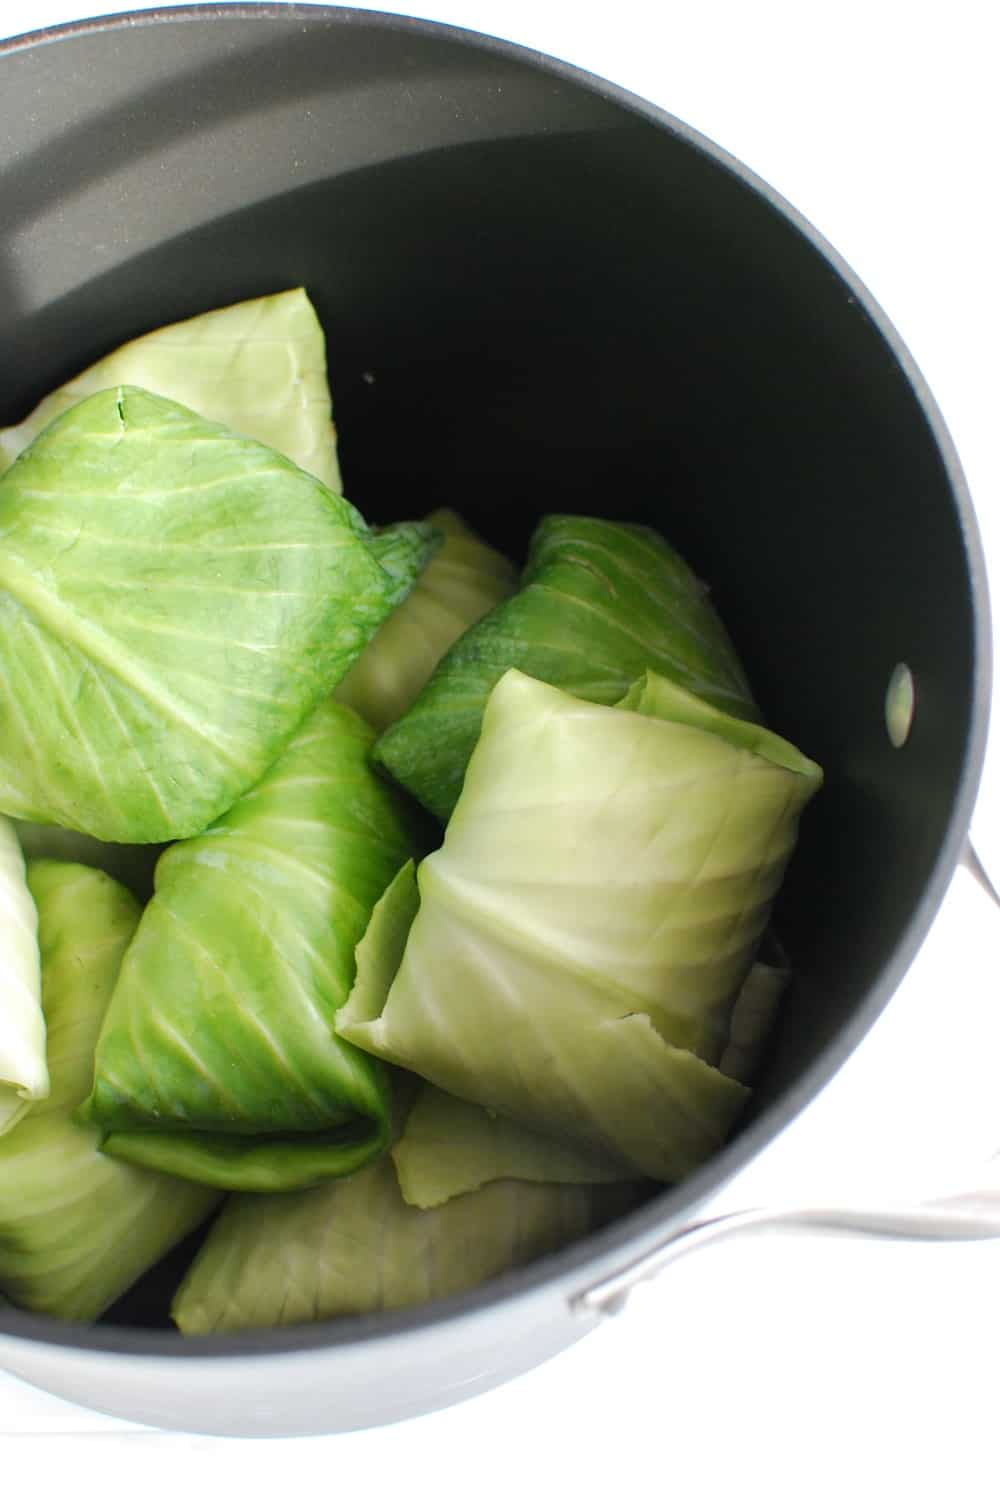 Stuffed cabbage rolls in a large pot before cooking